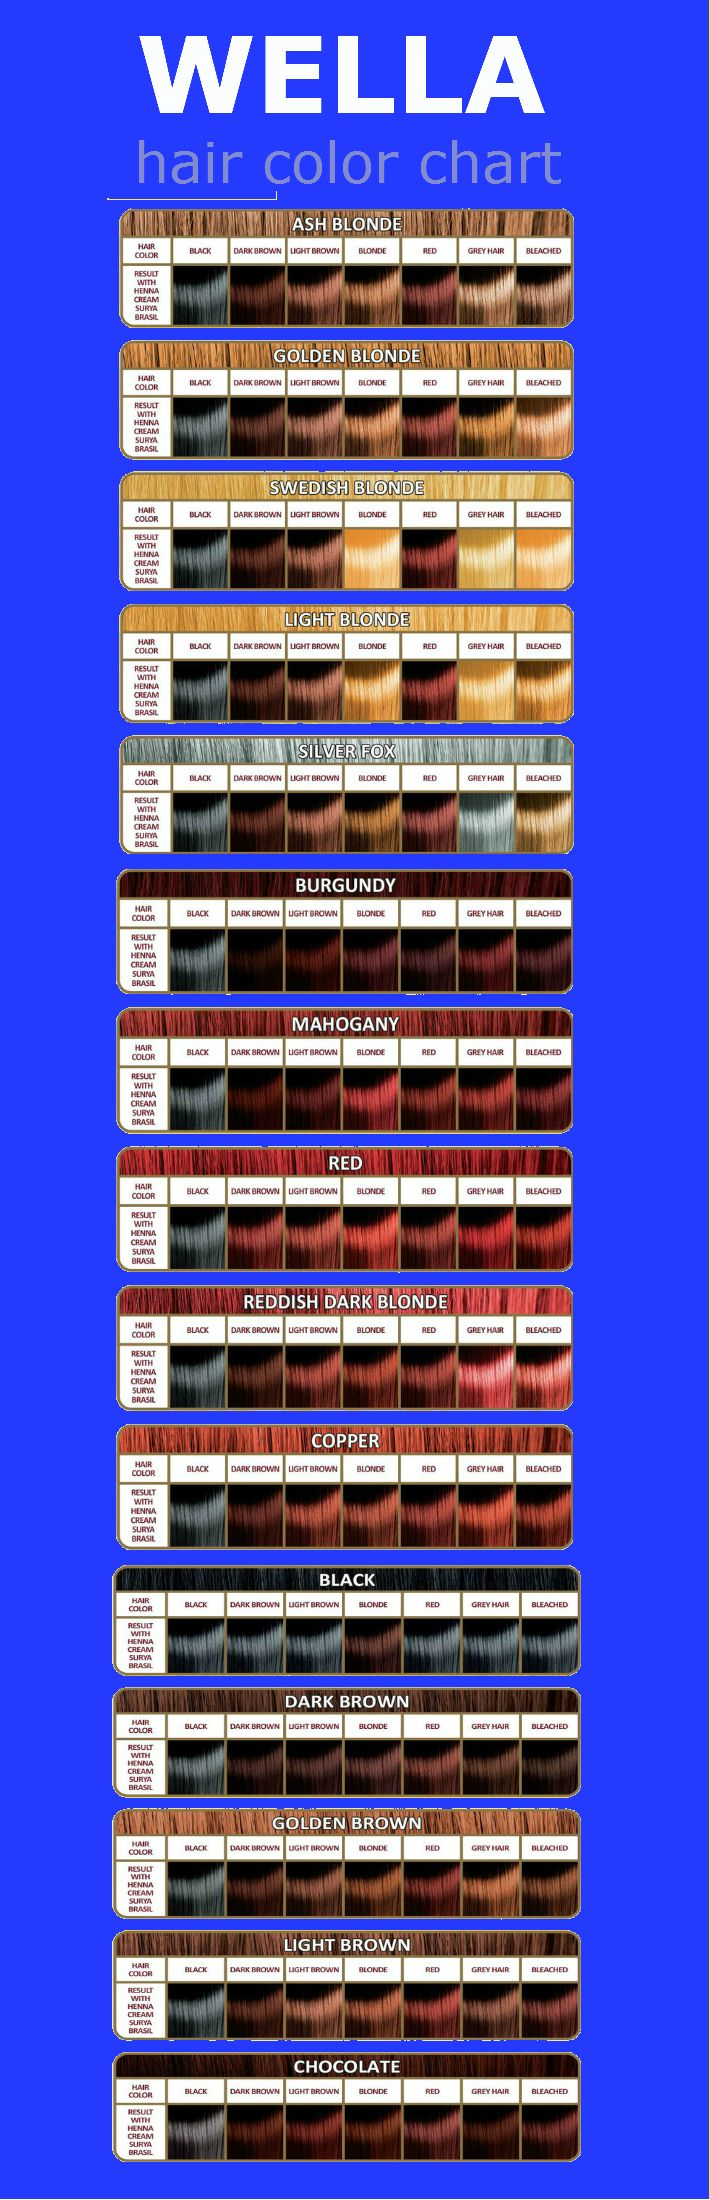 Click to close or and hold for moving picture wella hair color chart also rh pinterest